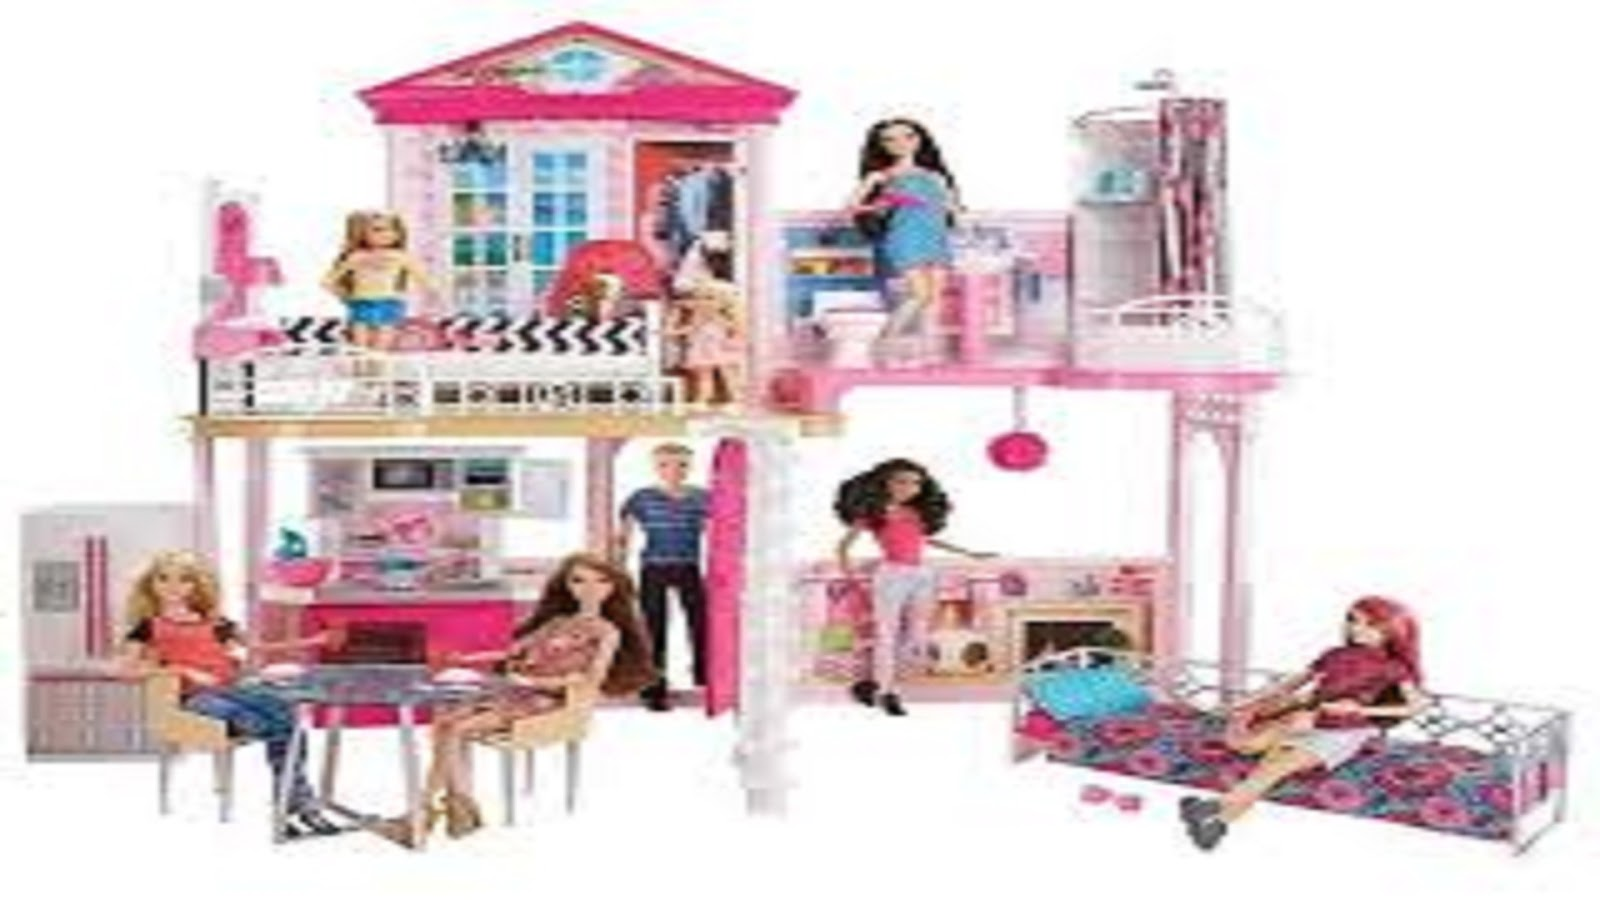 barbie life in the dreamhouse home decor babie doll life size barbie deam house decor photos furniture